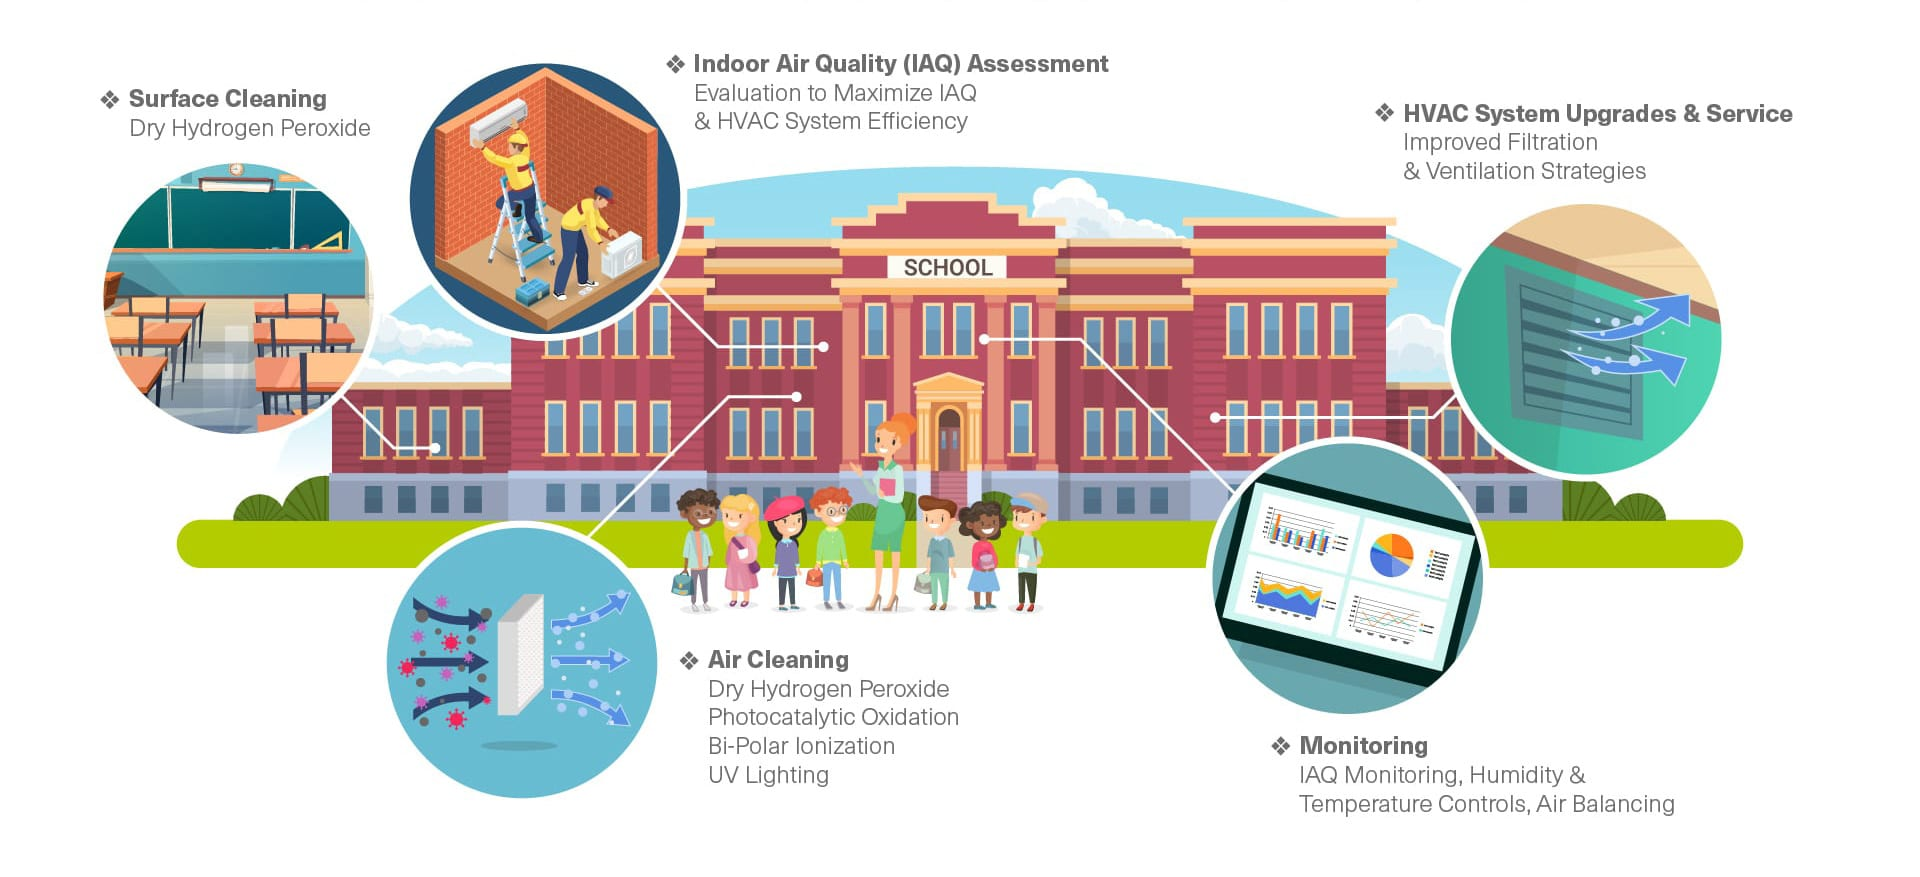 Building Upgrades and Technologies to Improve your Schools' Indoor Air Quality